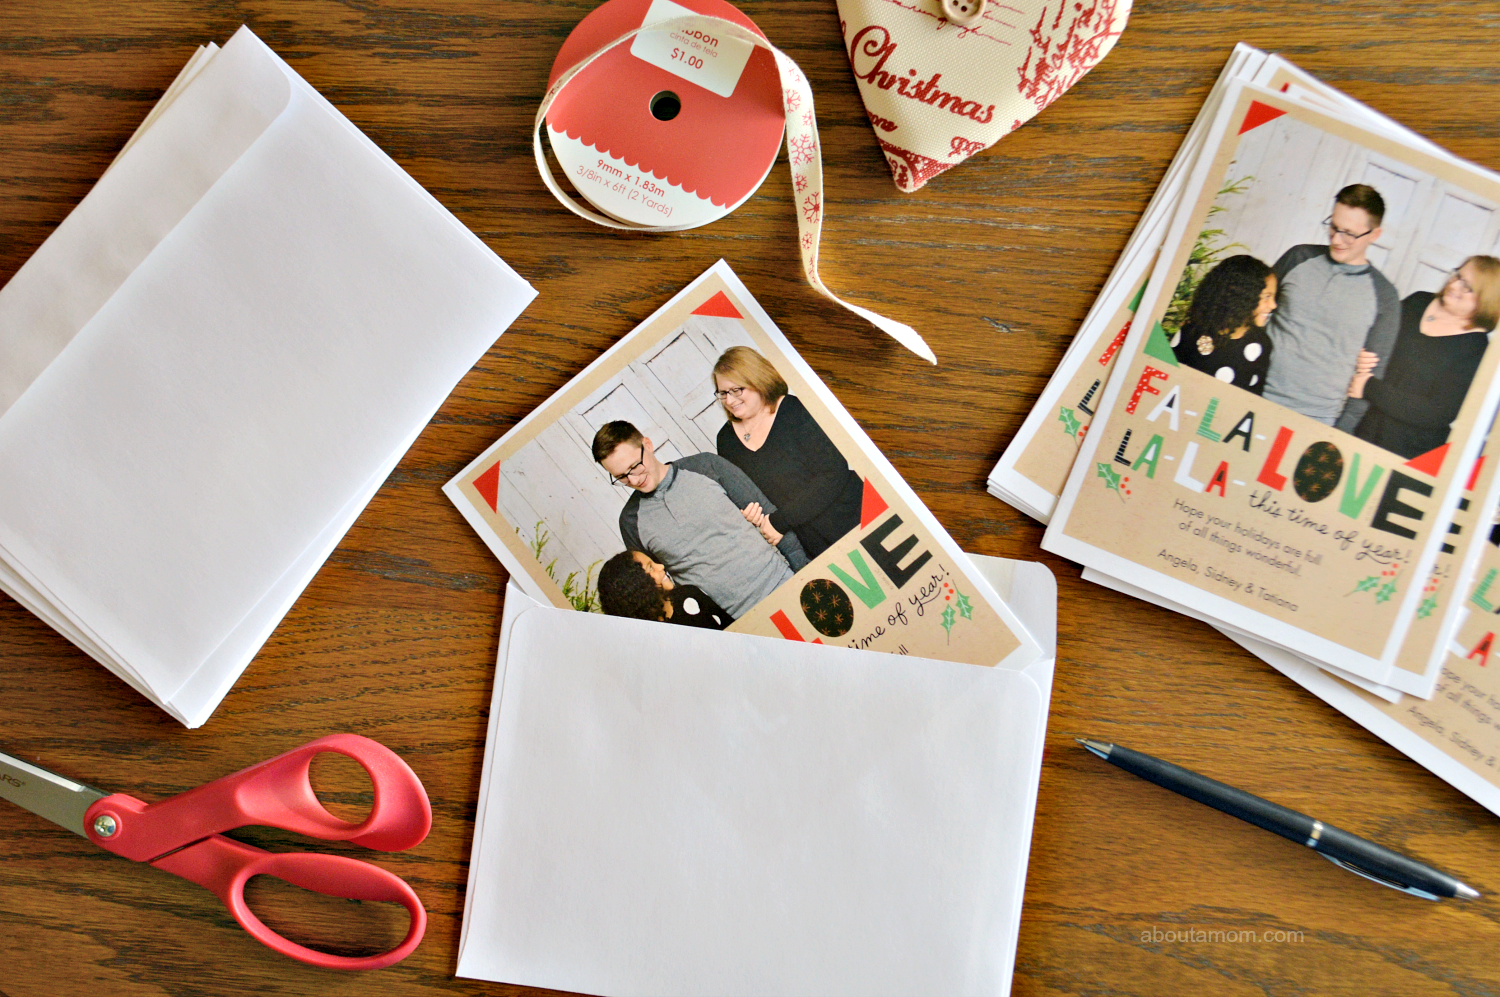 Short on time? If it seems like the holiday season has snuck up on you, you're not alone. Luckily, you can get same day holiday photo cards from CVS Photo.